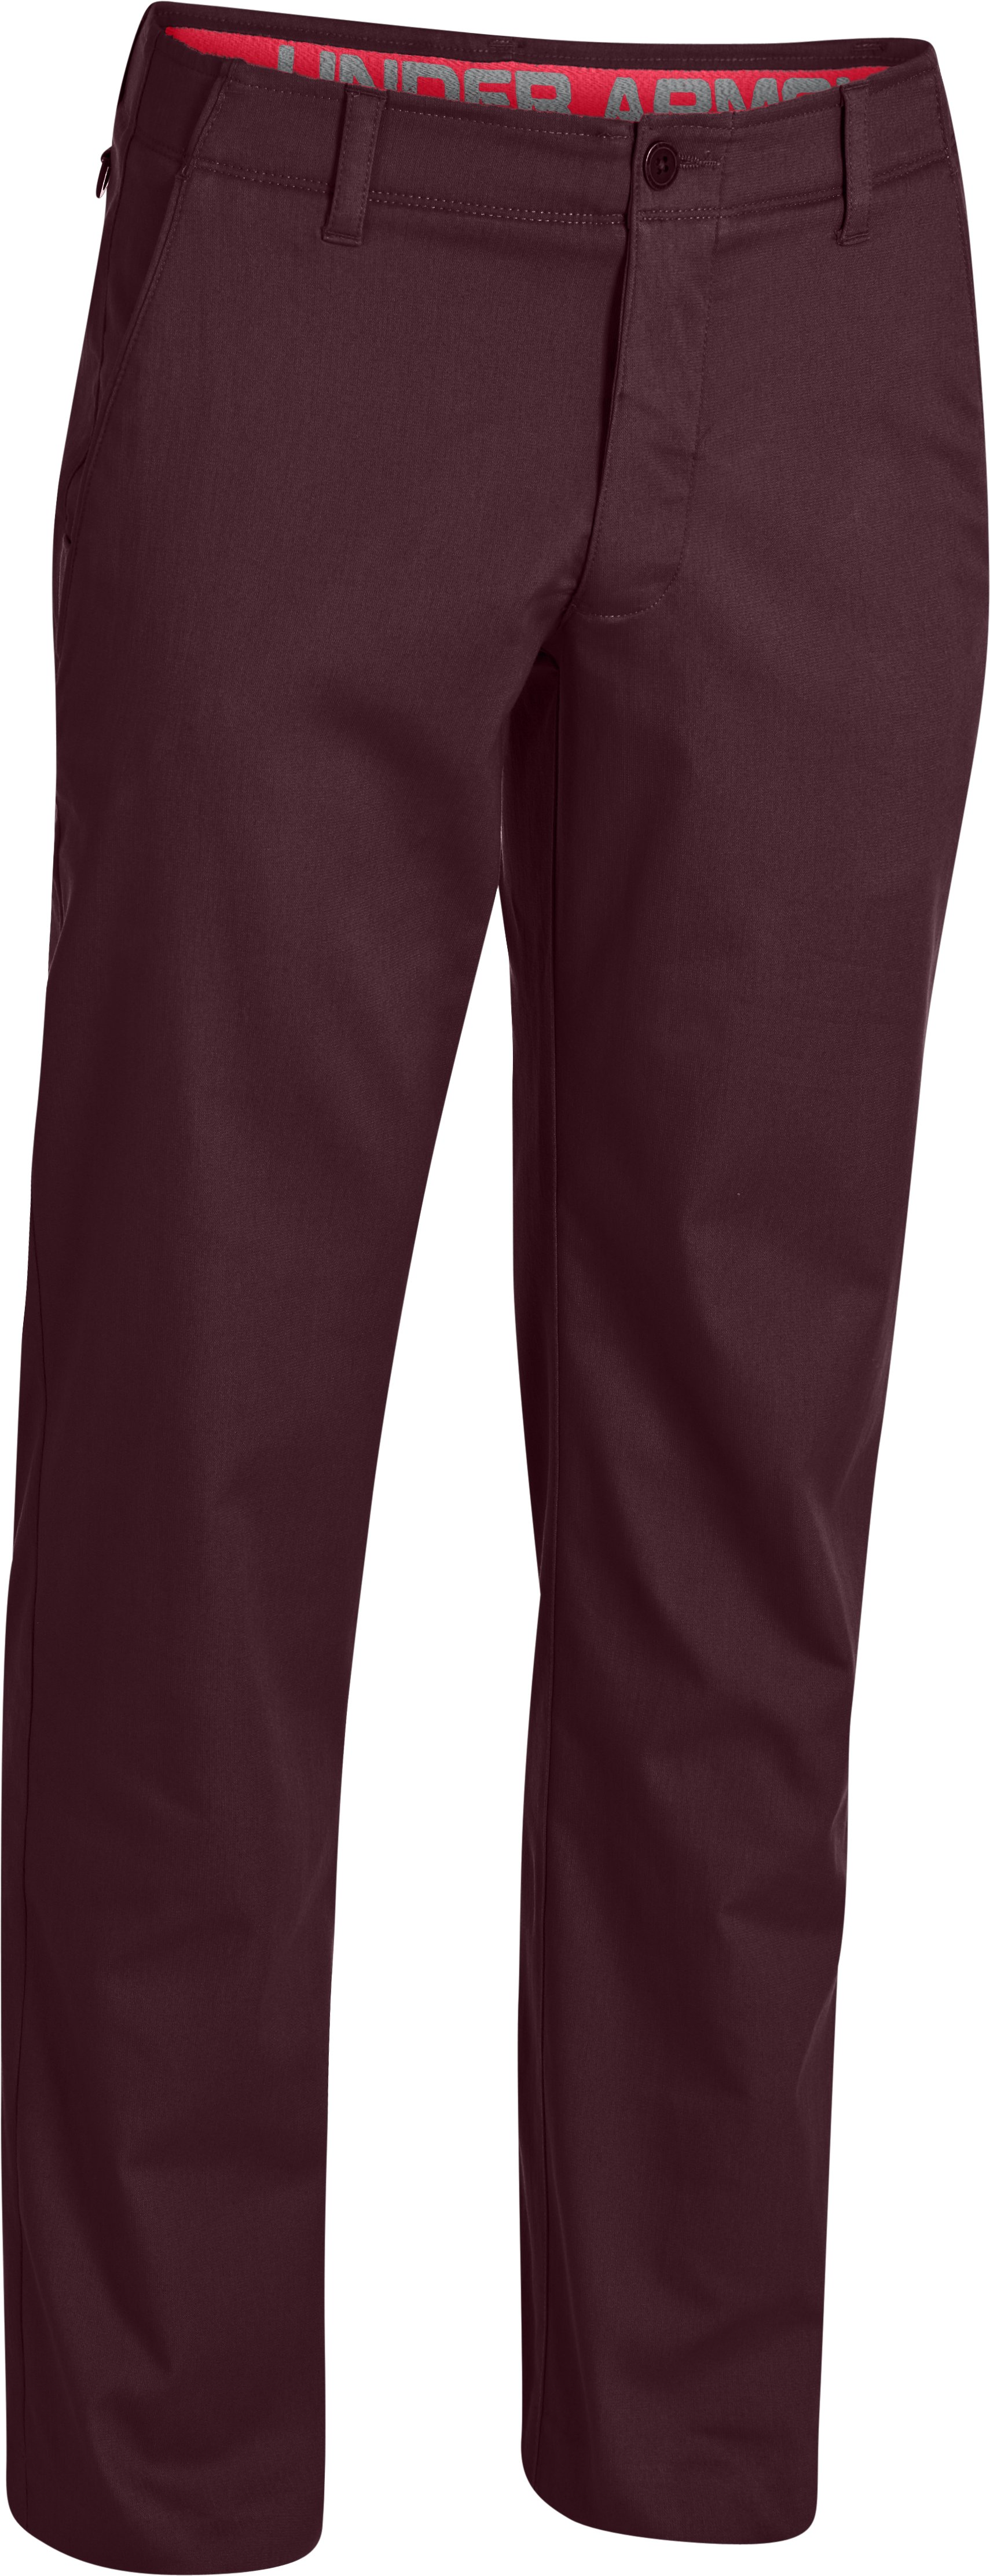 Men's UA Performance Chino, Ox Blood